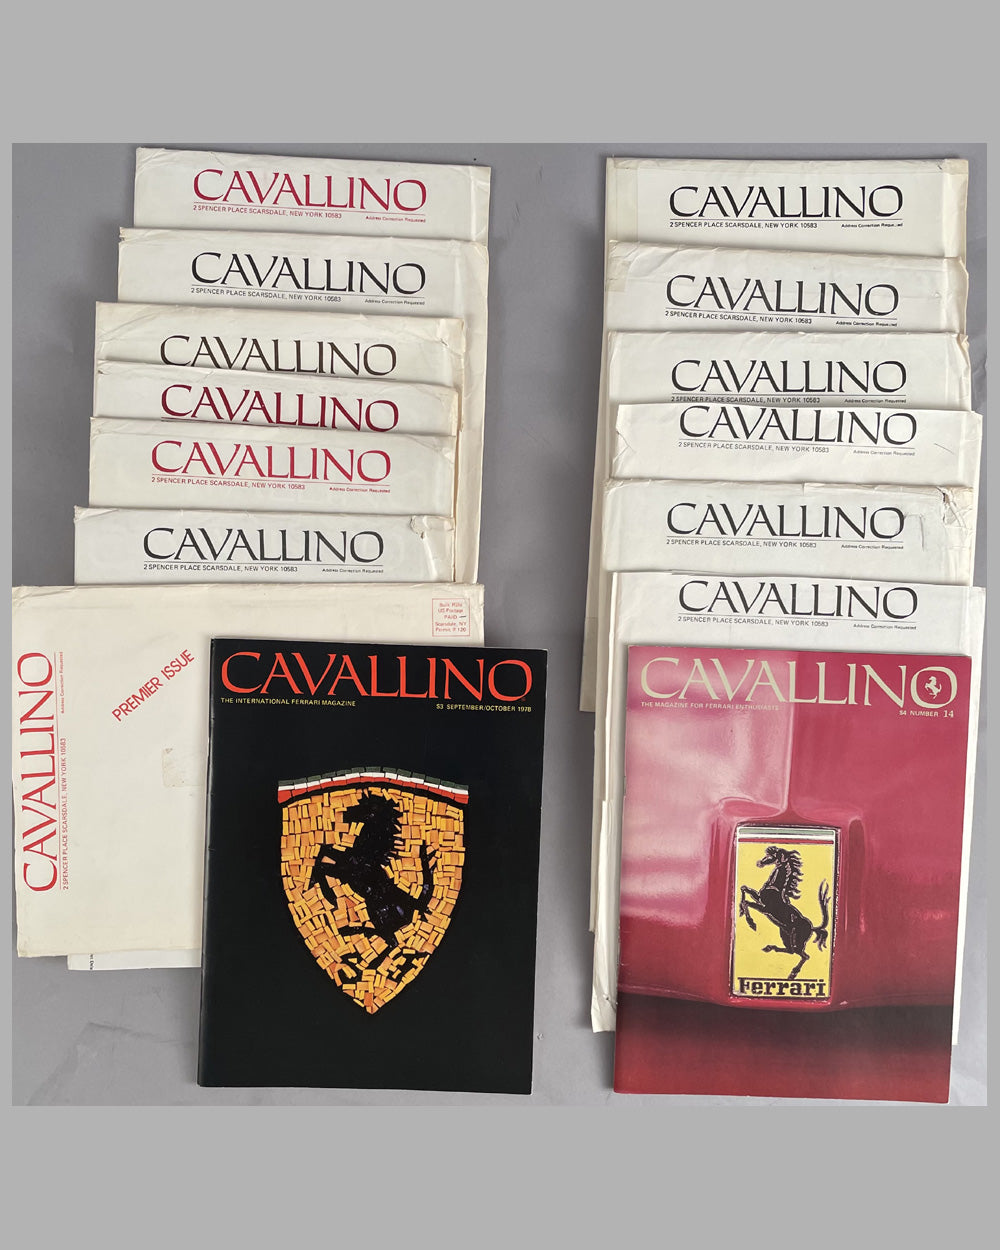 Cavallino Magazine from #1 through #14